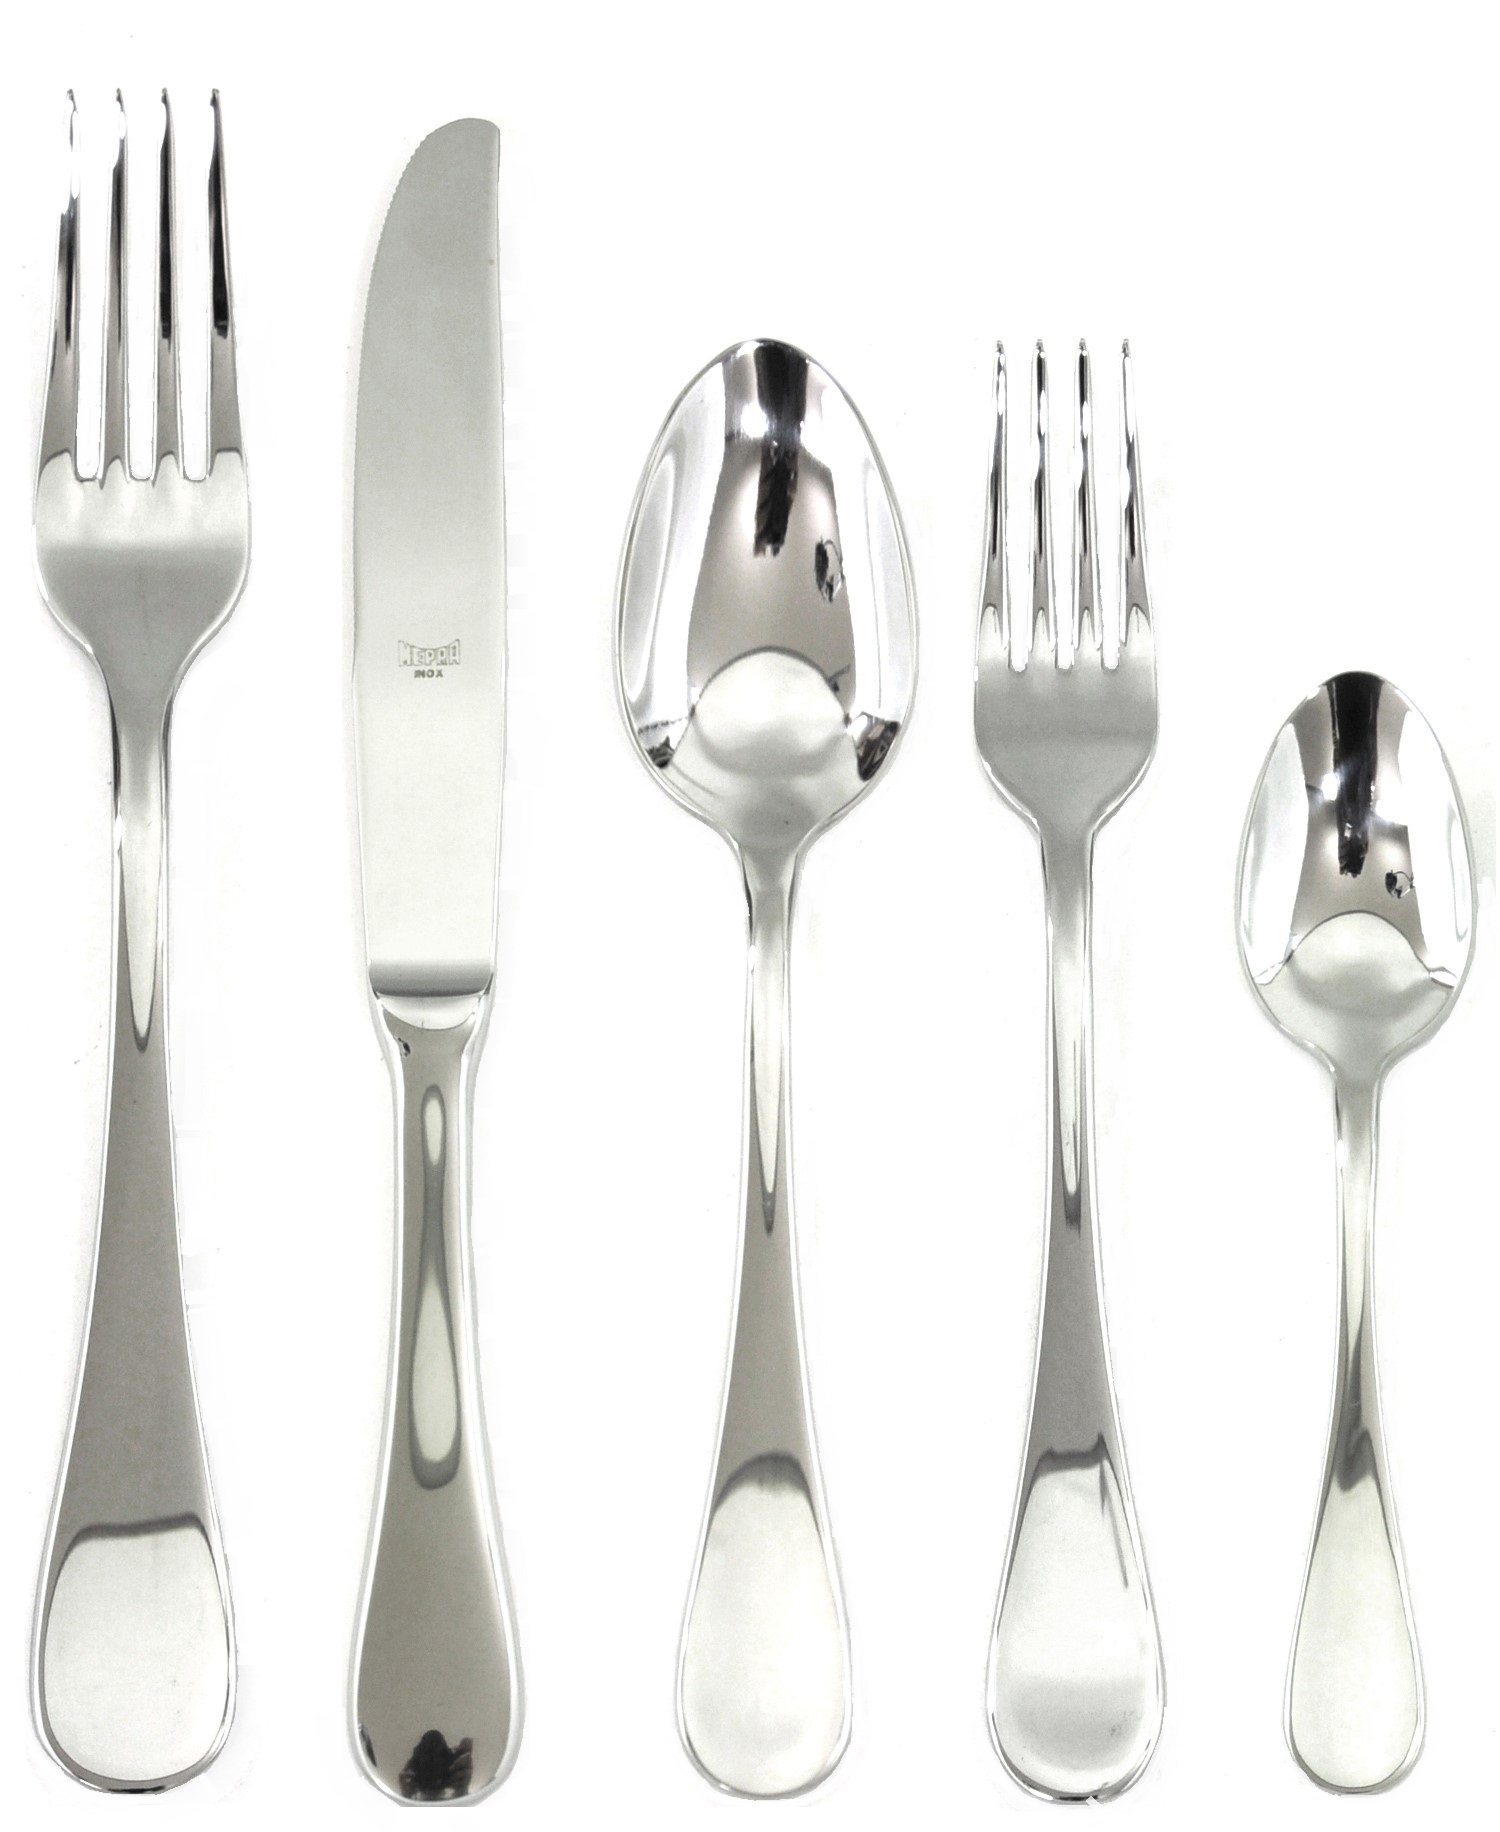 Mepra 1020B22005 Brescia 5 Piece Place Setting, Stainless Steel - Made in Italy with the highest quality of 18/10 stainless steel 30 mm thick Durable and ergonic - kitchen-tabletop, kitchen-dining-room, flatware - 71sLHQgHjeL -